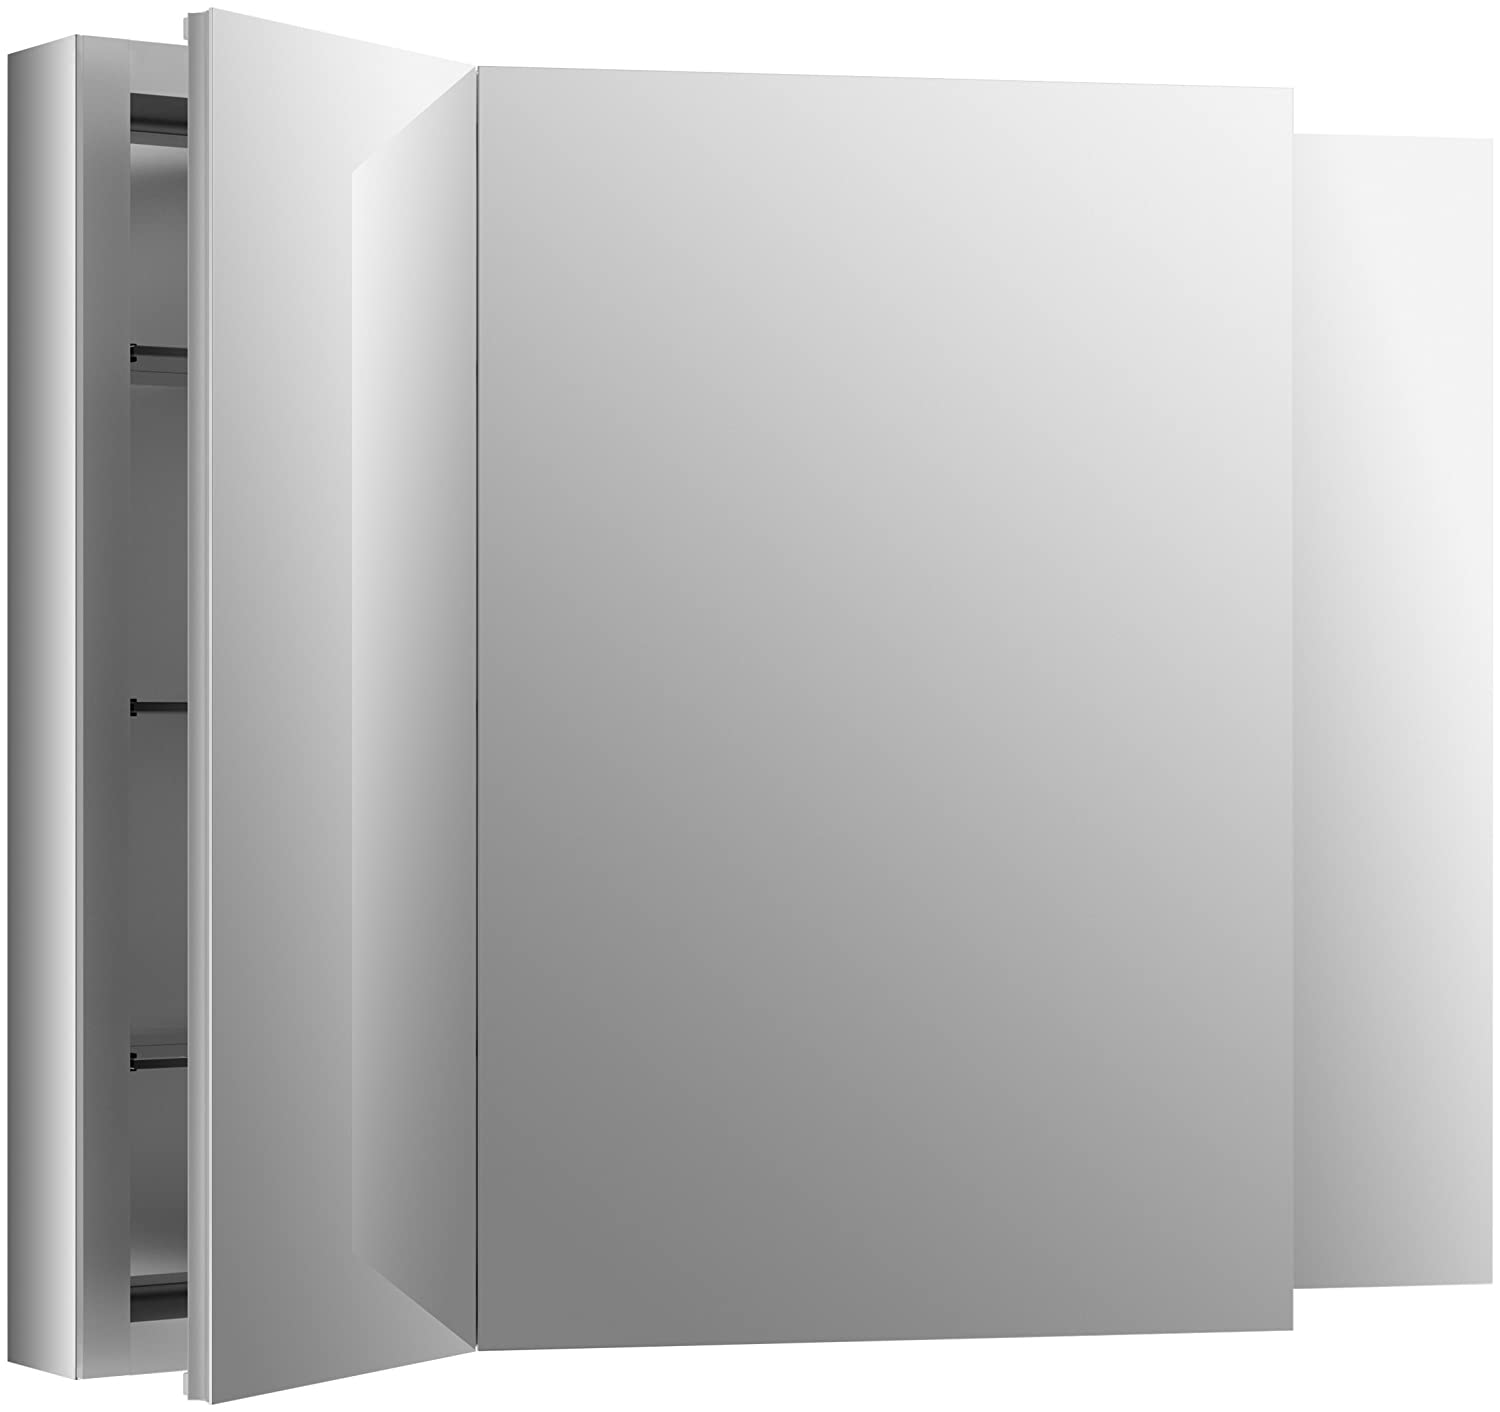 two features aluminum cabinet reveal sided double light with to this another medicine that glass lighted adjustable brilliant opens mirror bathroom shelves led door a behind pa mirrored